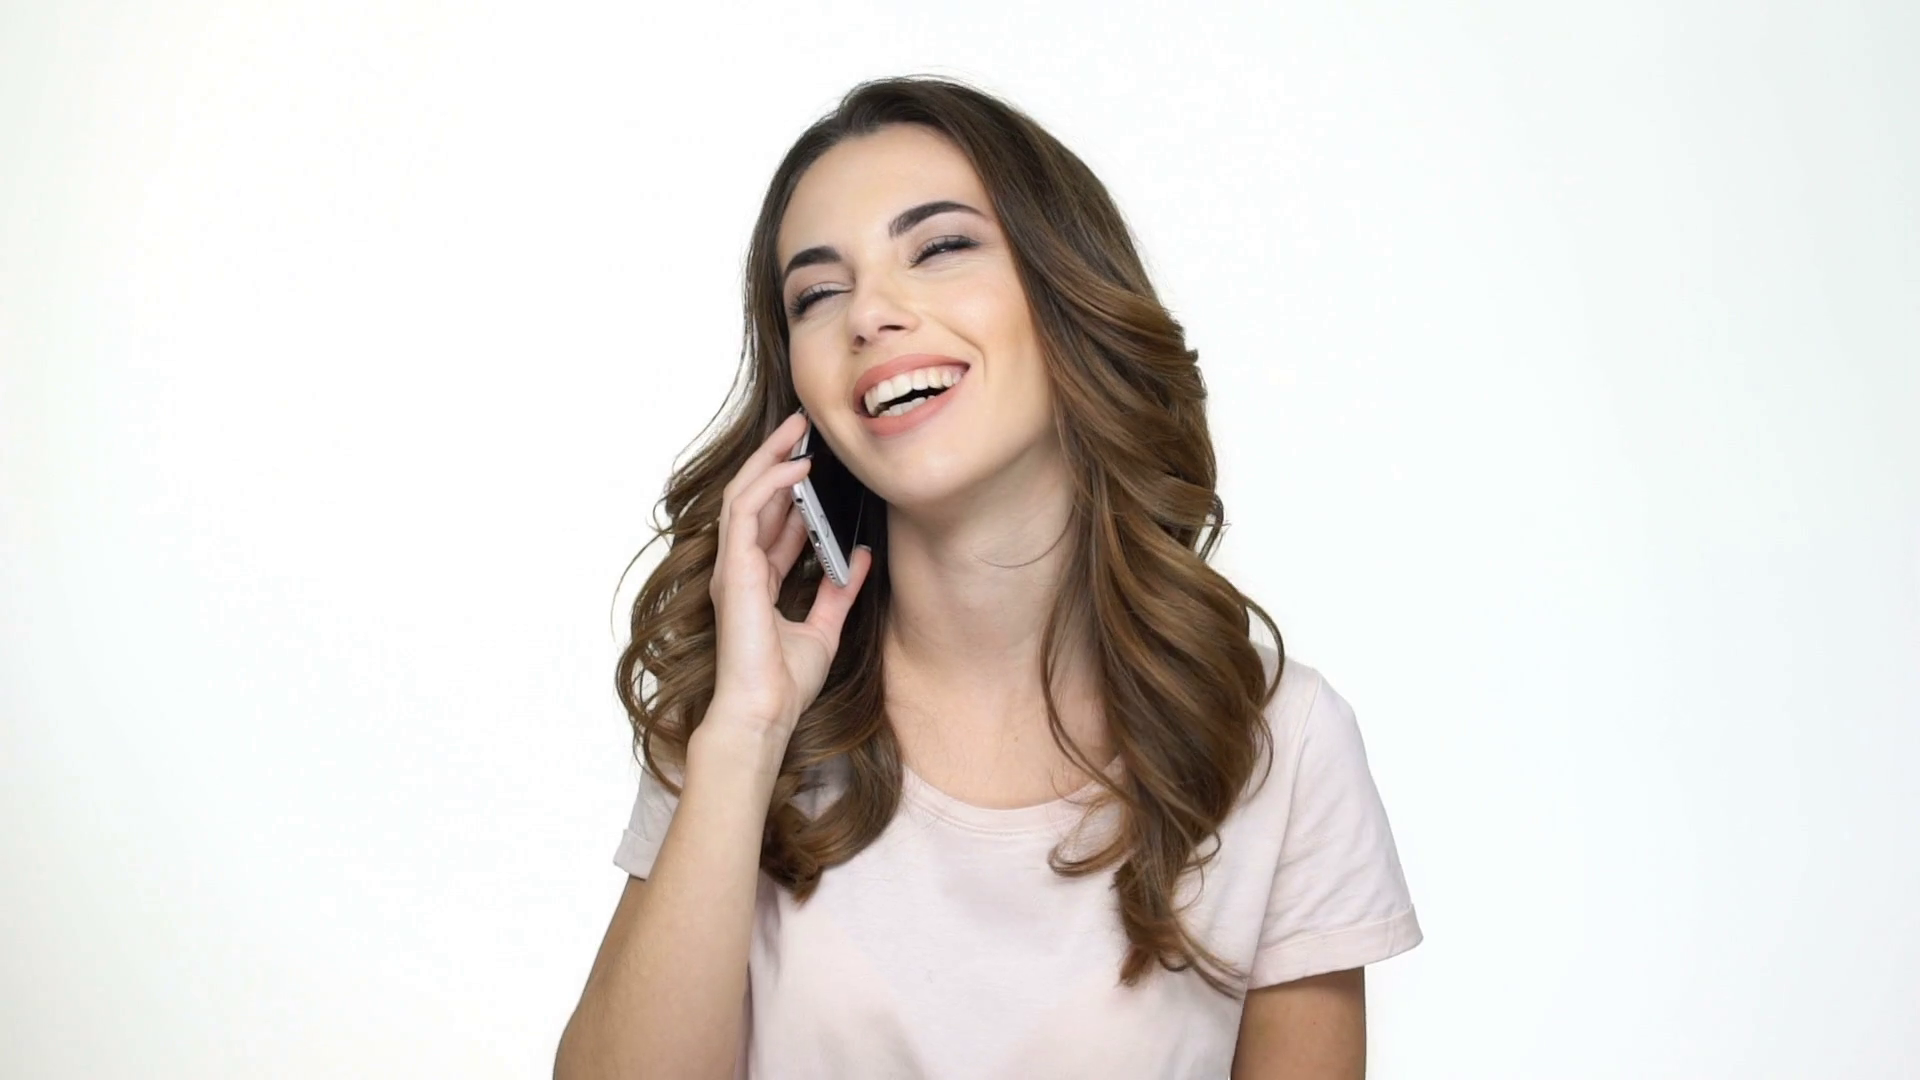 Woman Talking On Phone Png - Smiling young woman talking on mobile phone and showing thumbs up ...